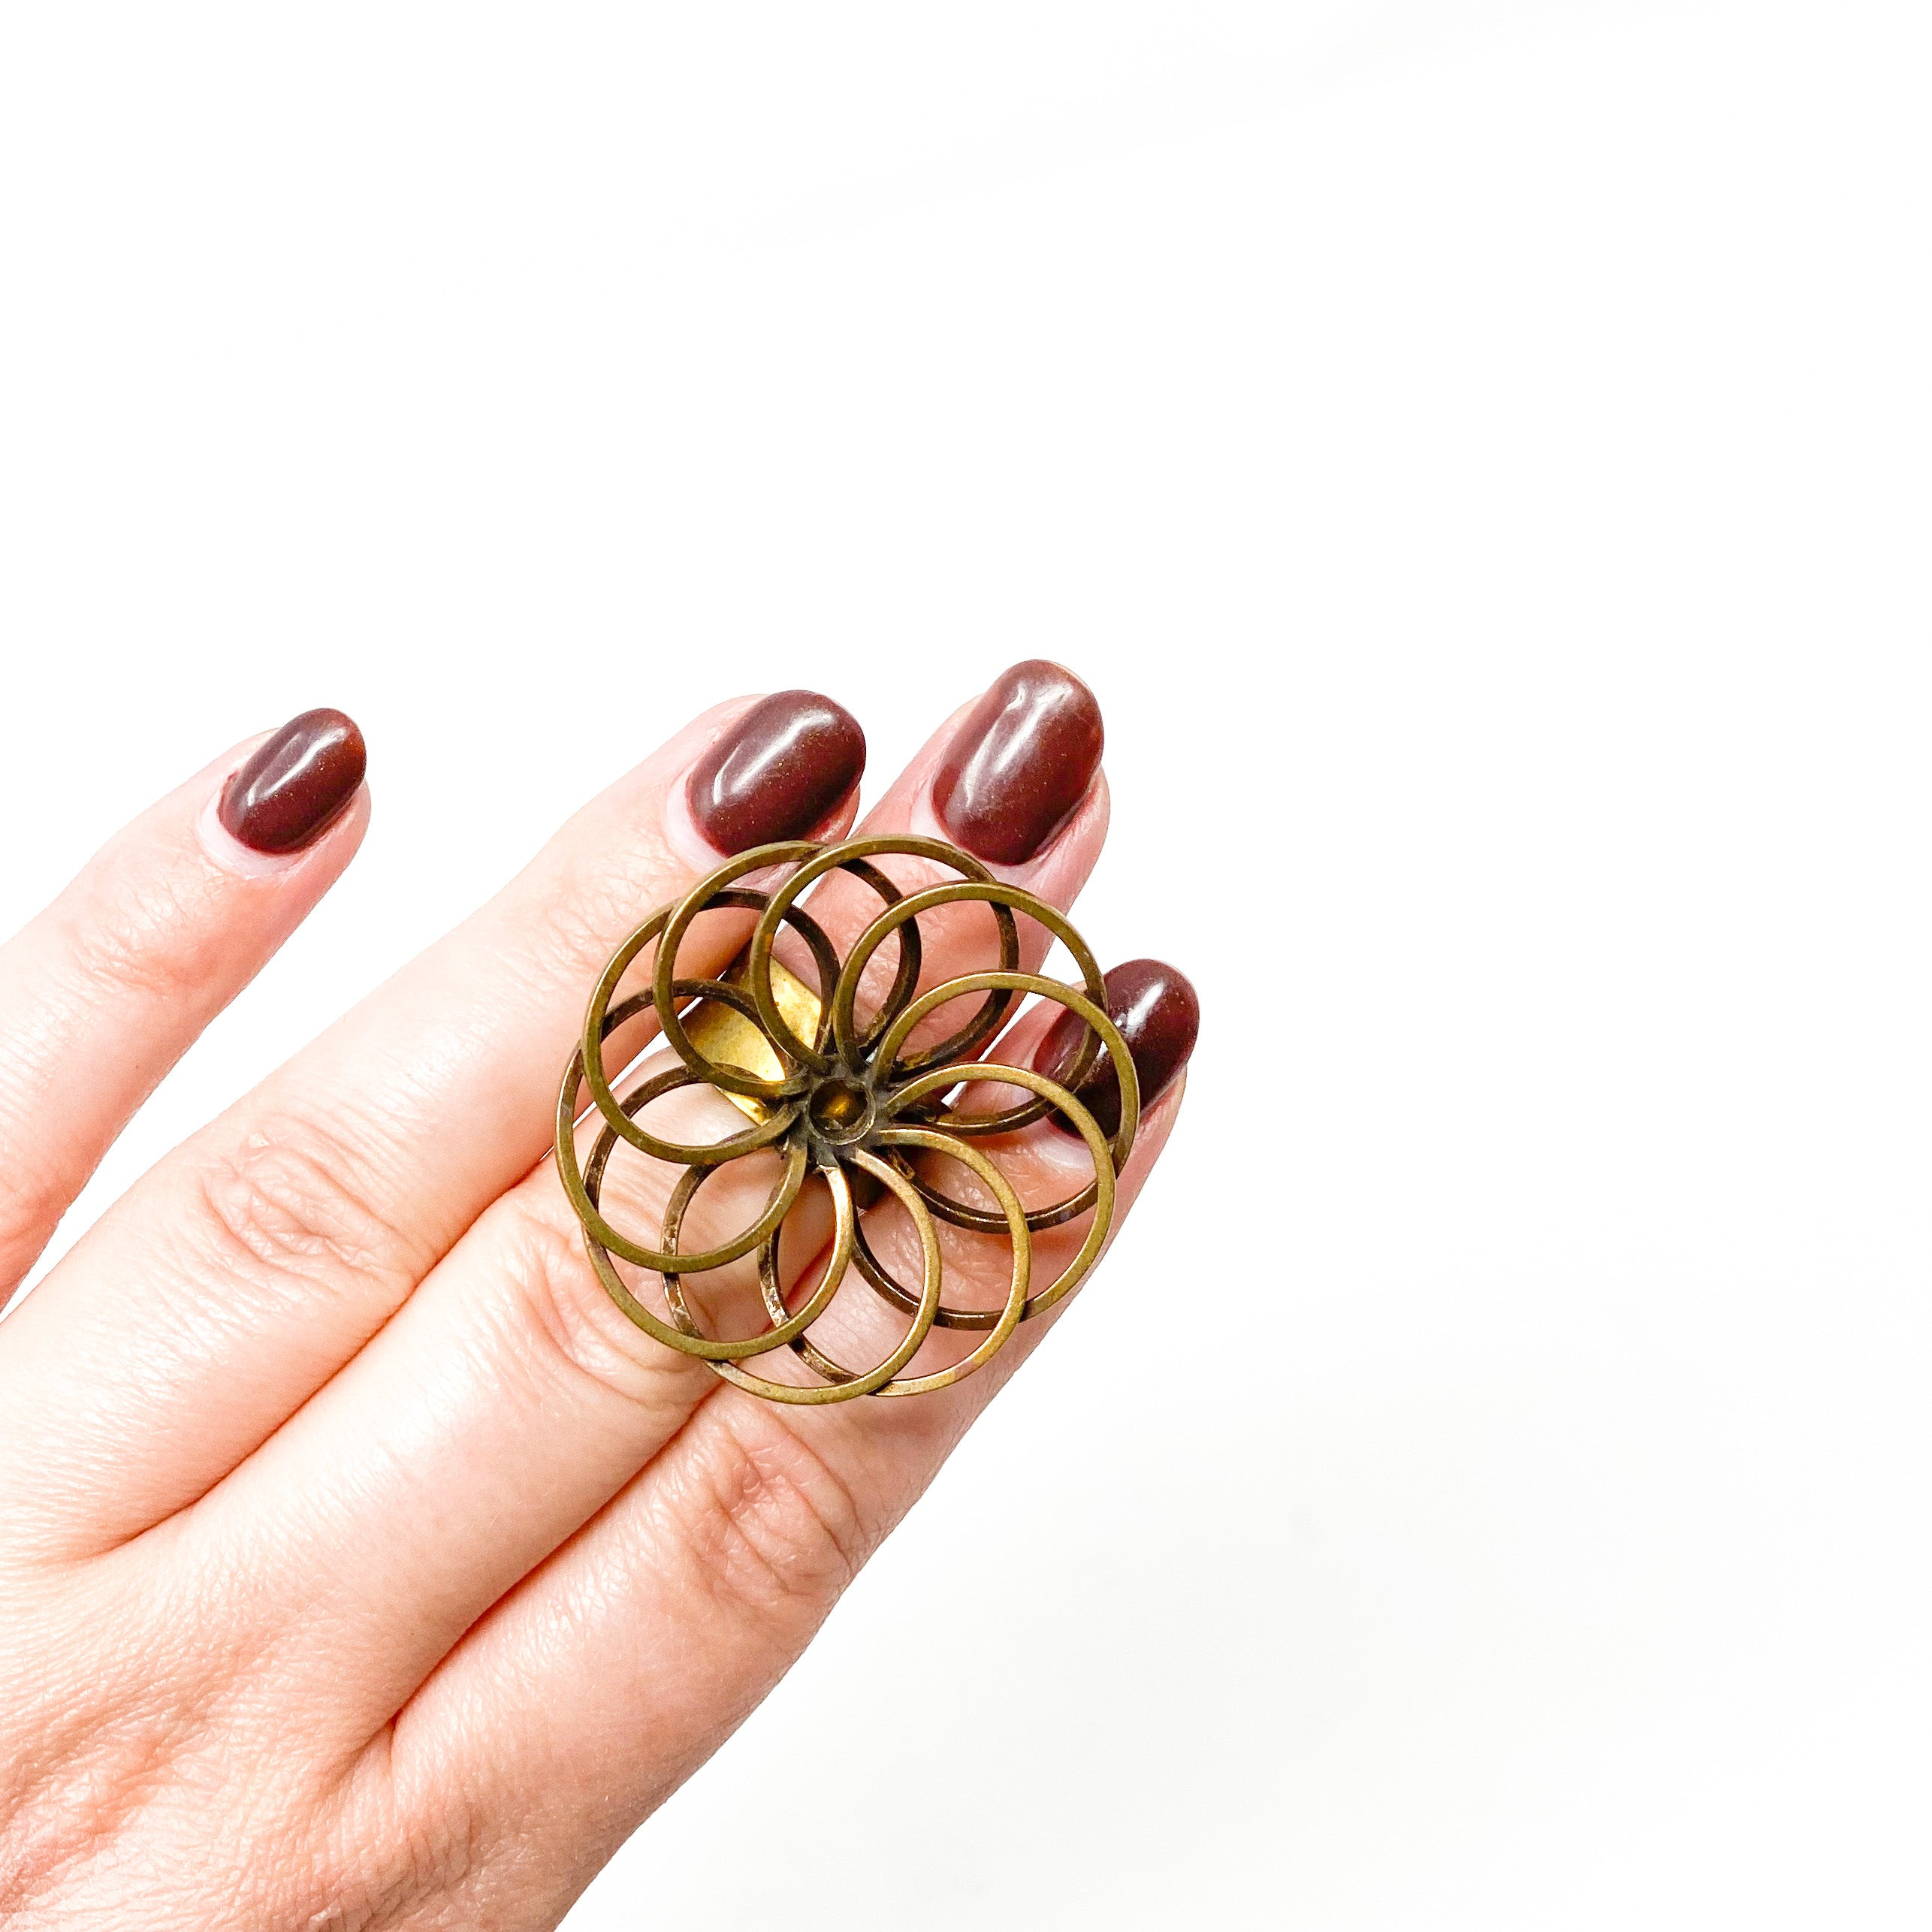 VIBE Ring - Twisted Silver Jewelry